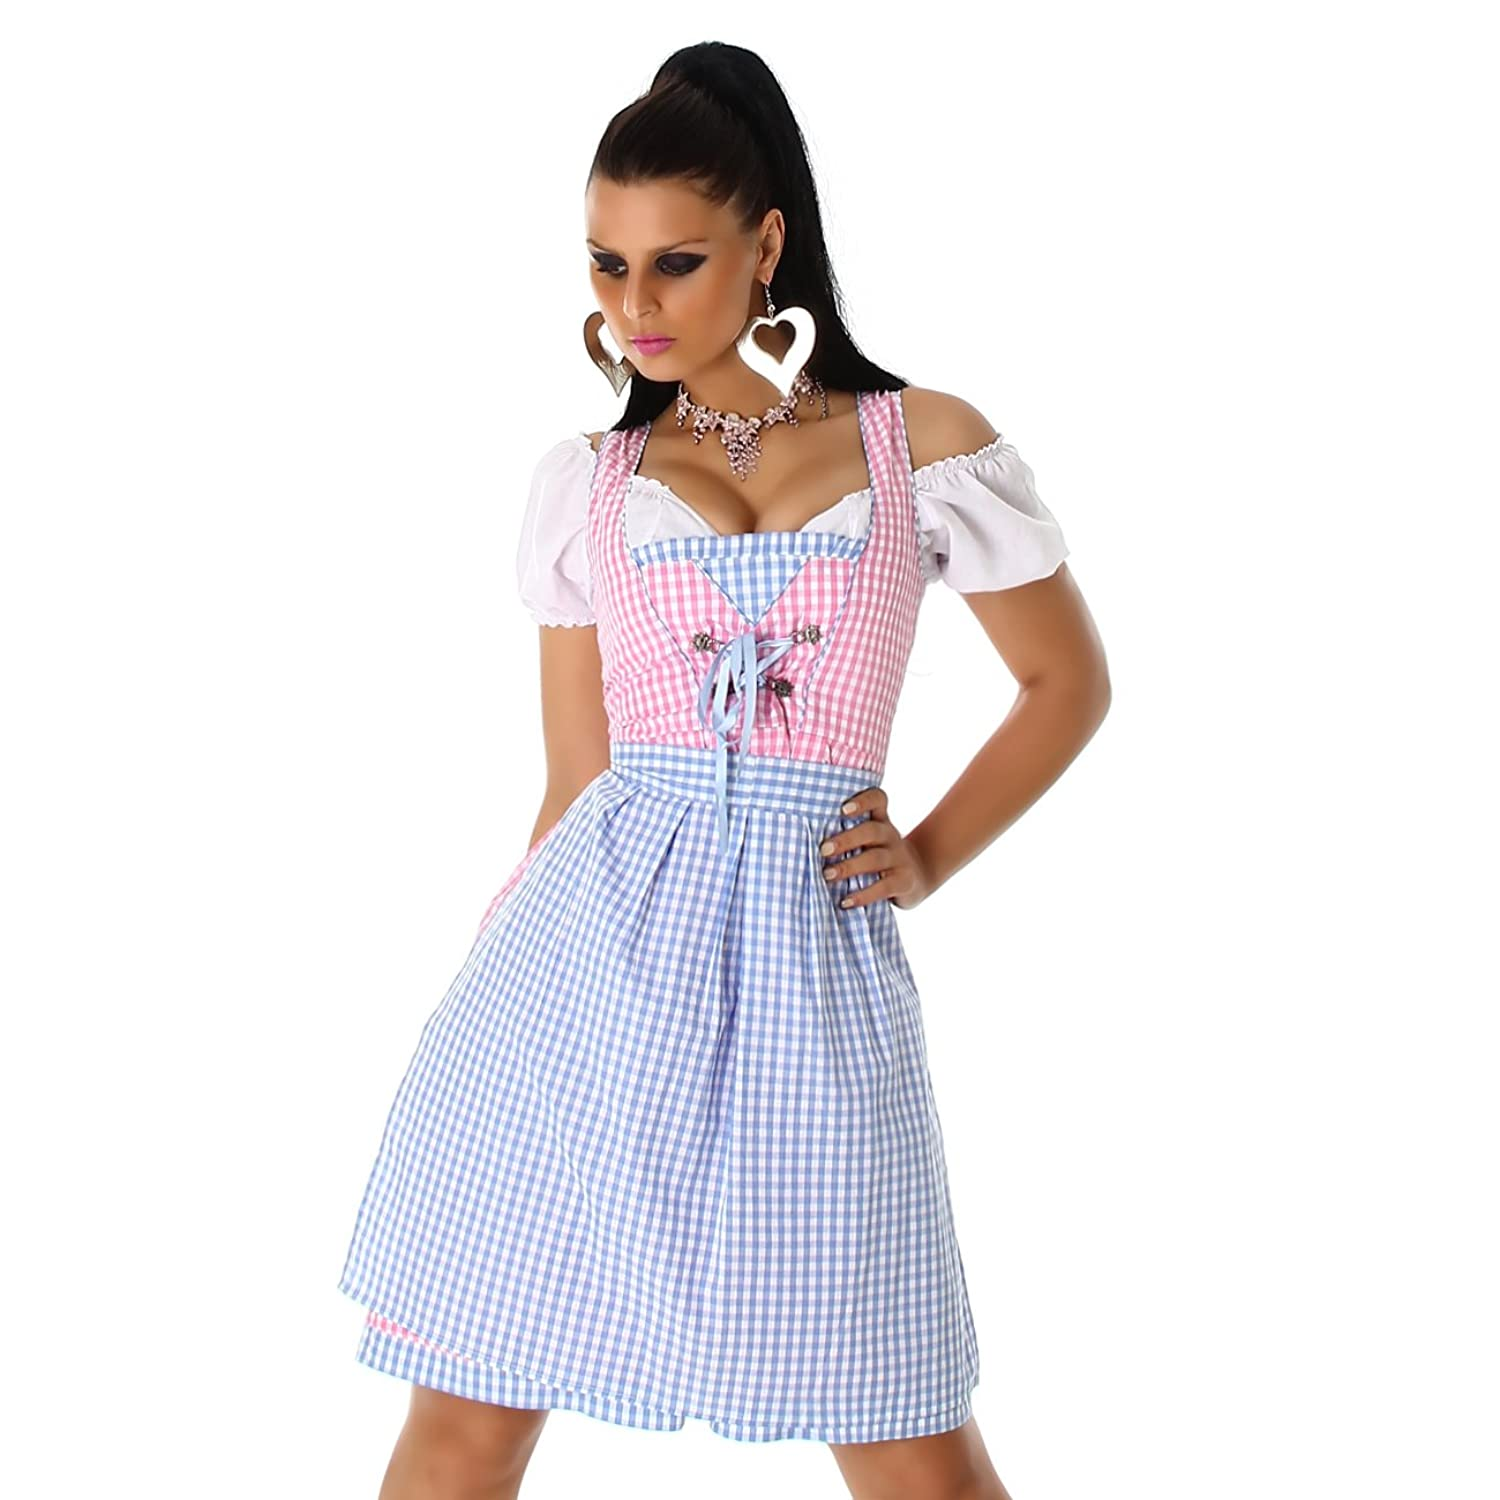 jela london damen dirndl kleid oktoberfest wasen outfit. Black Bedroom Furniture Sets. Home Design Ideas